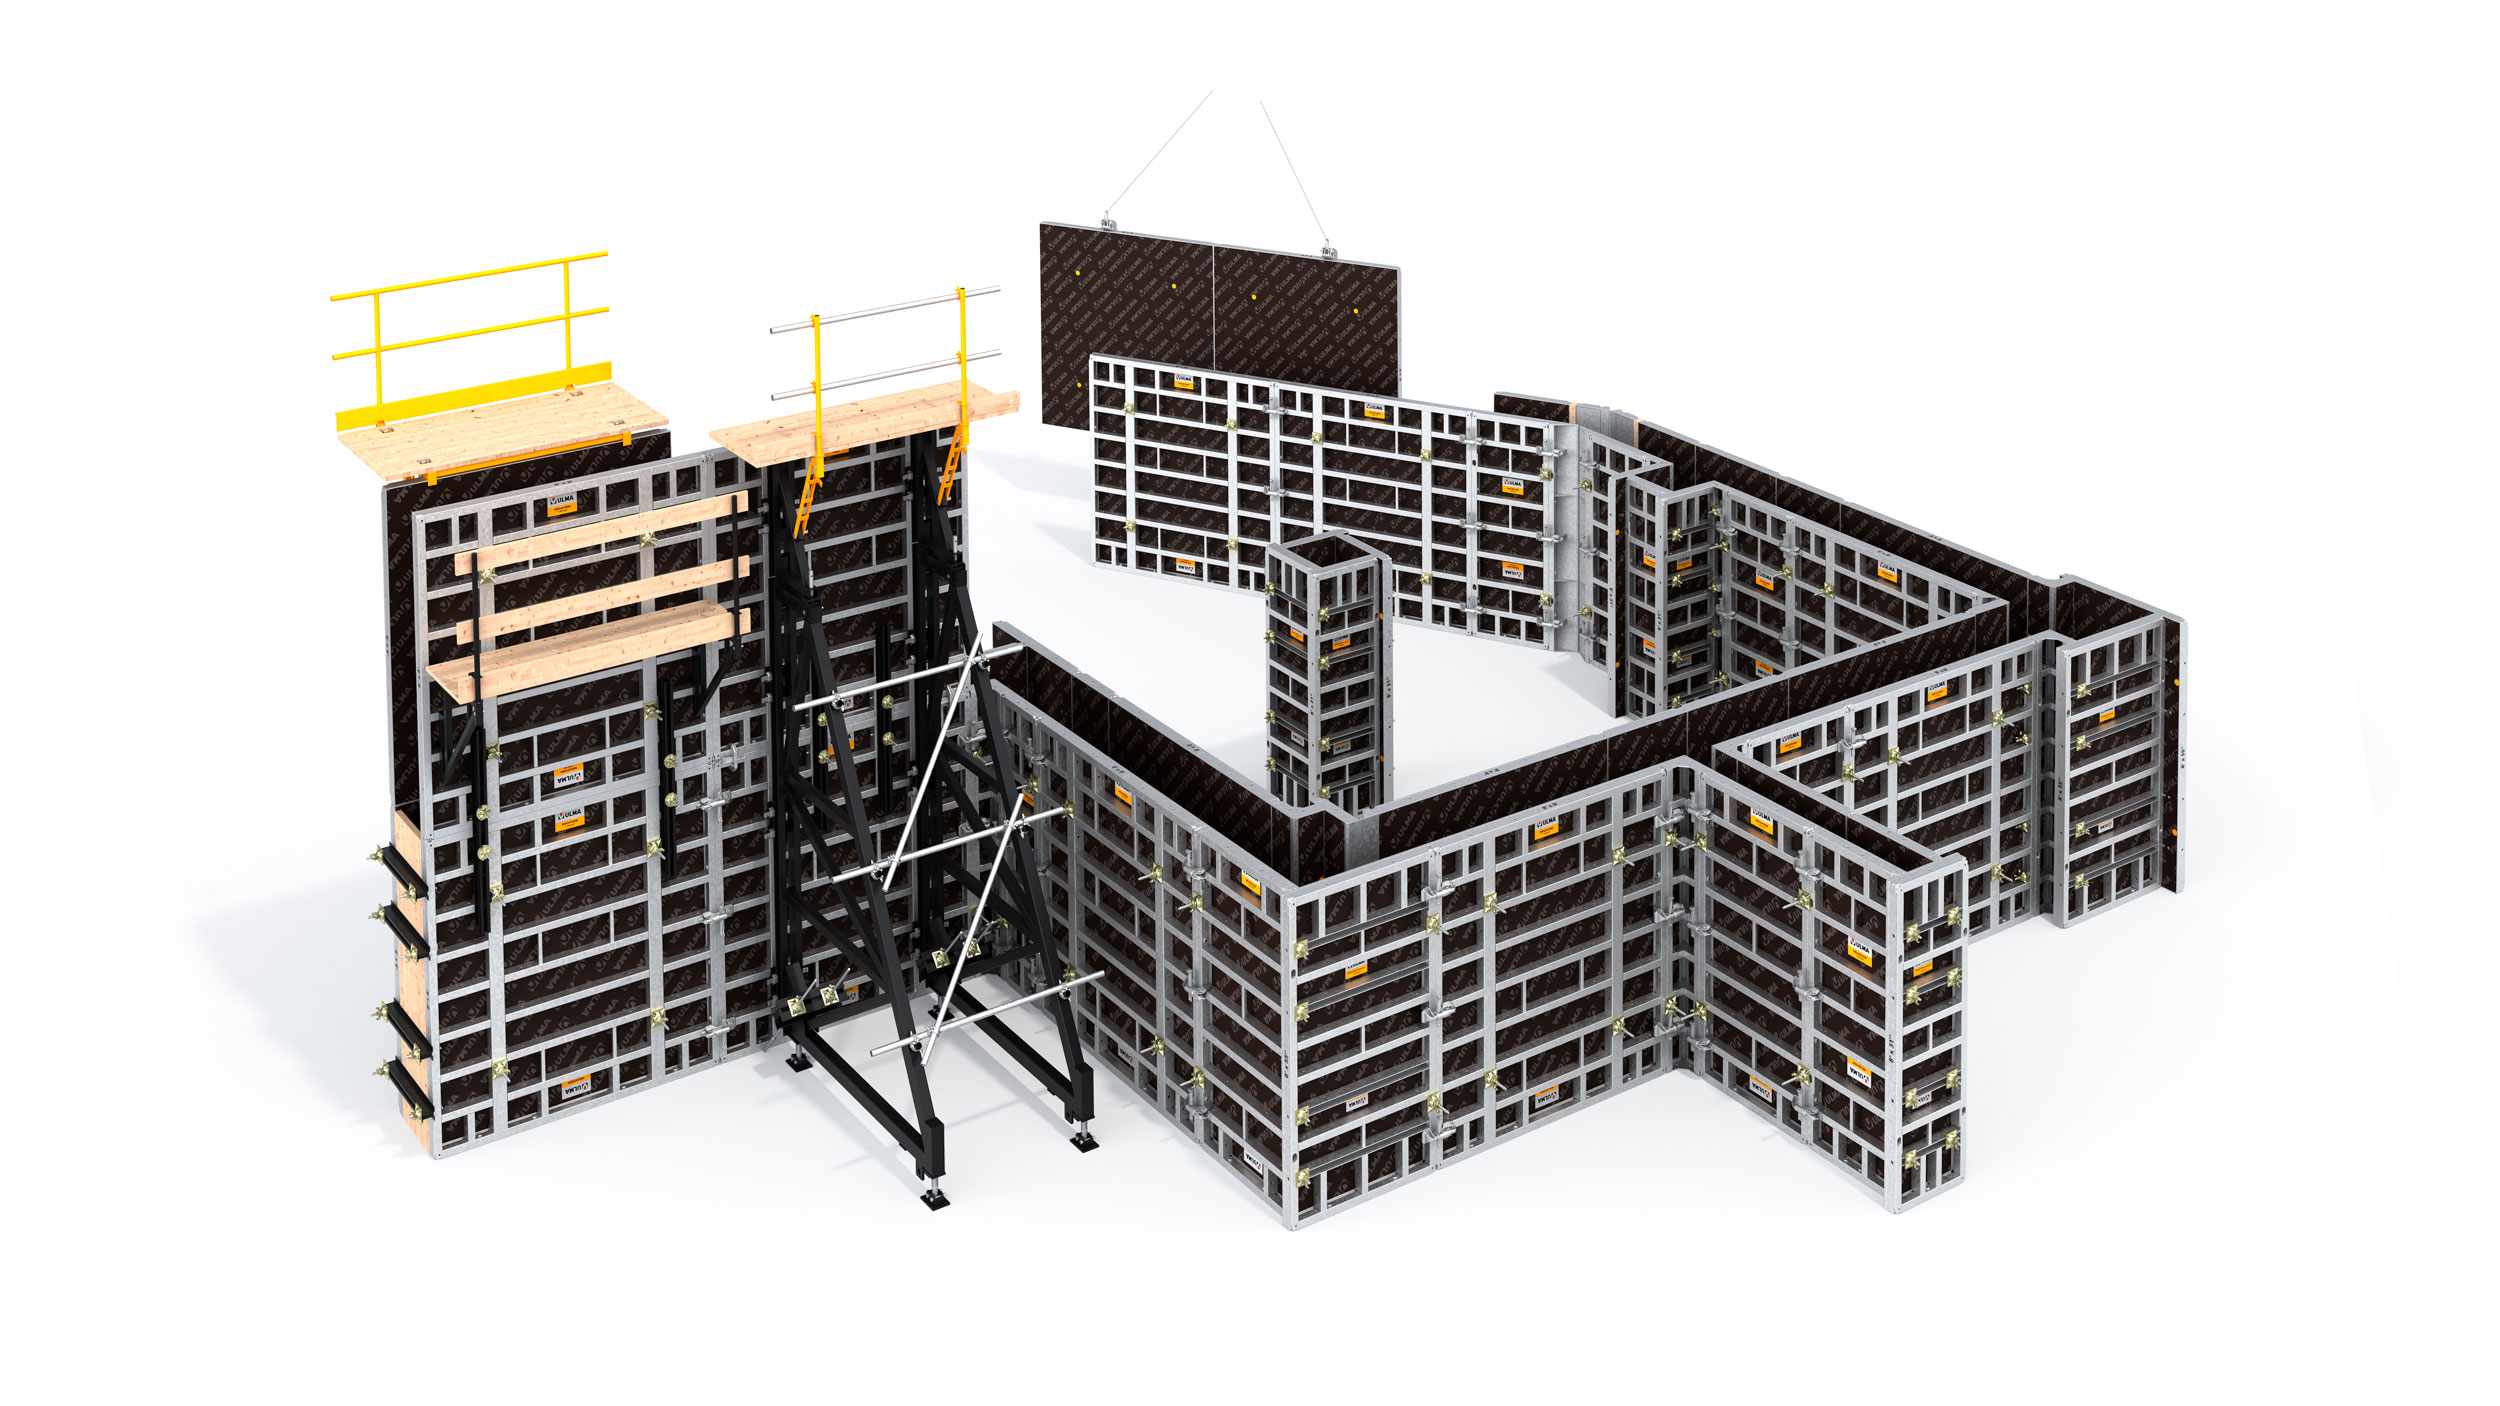 Strong and versatile modular wall and column formwork in imperial measurements for building construction or civil engineering projects.